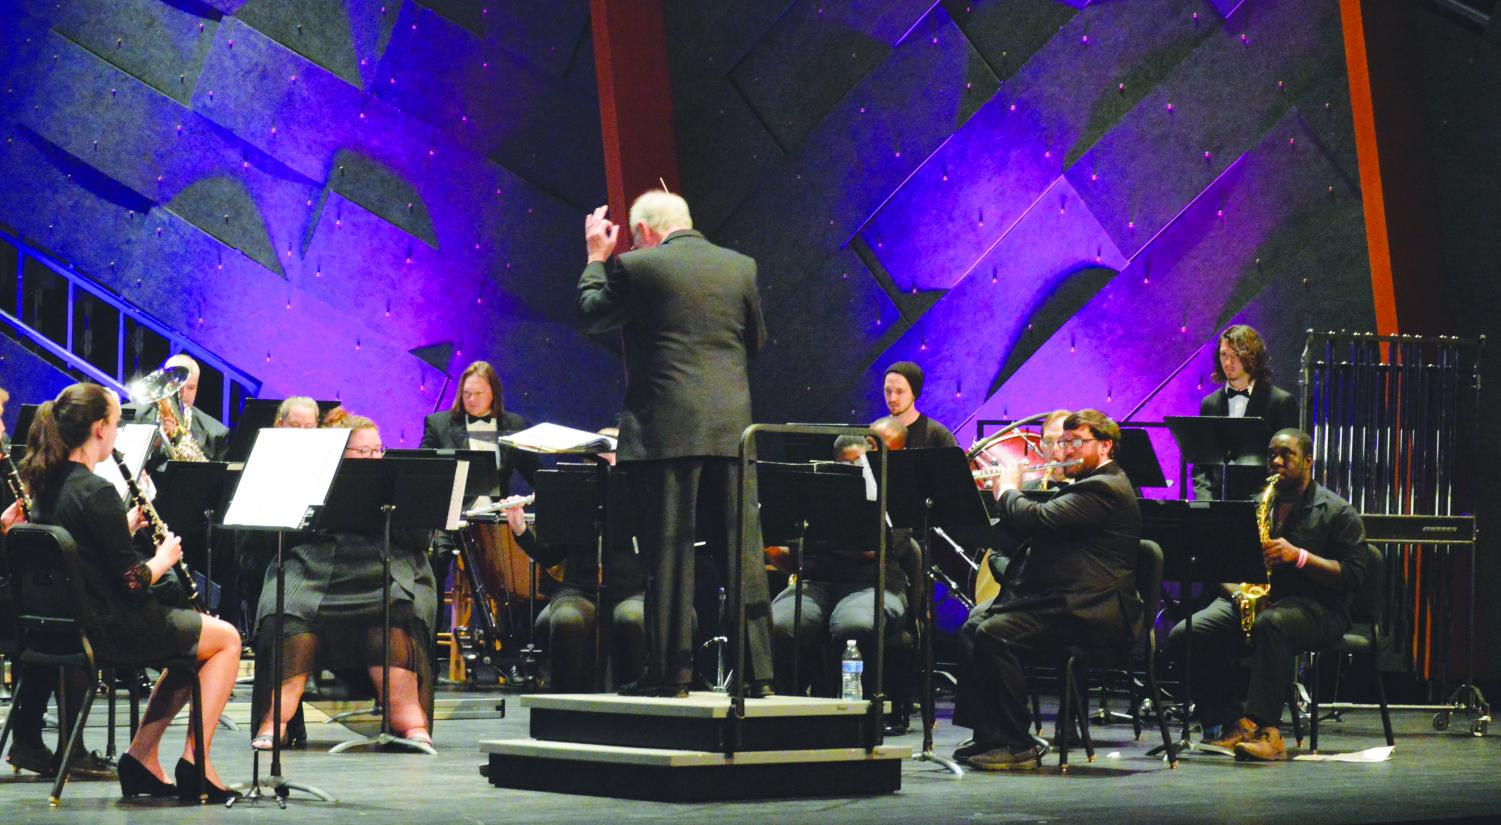 The FMU Concert Band performs a Halloween-themed concert with pieces from